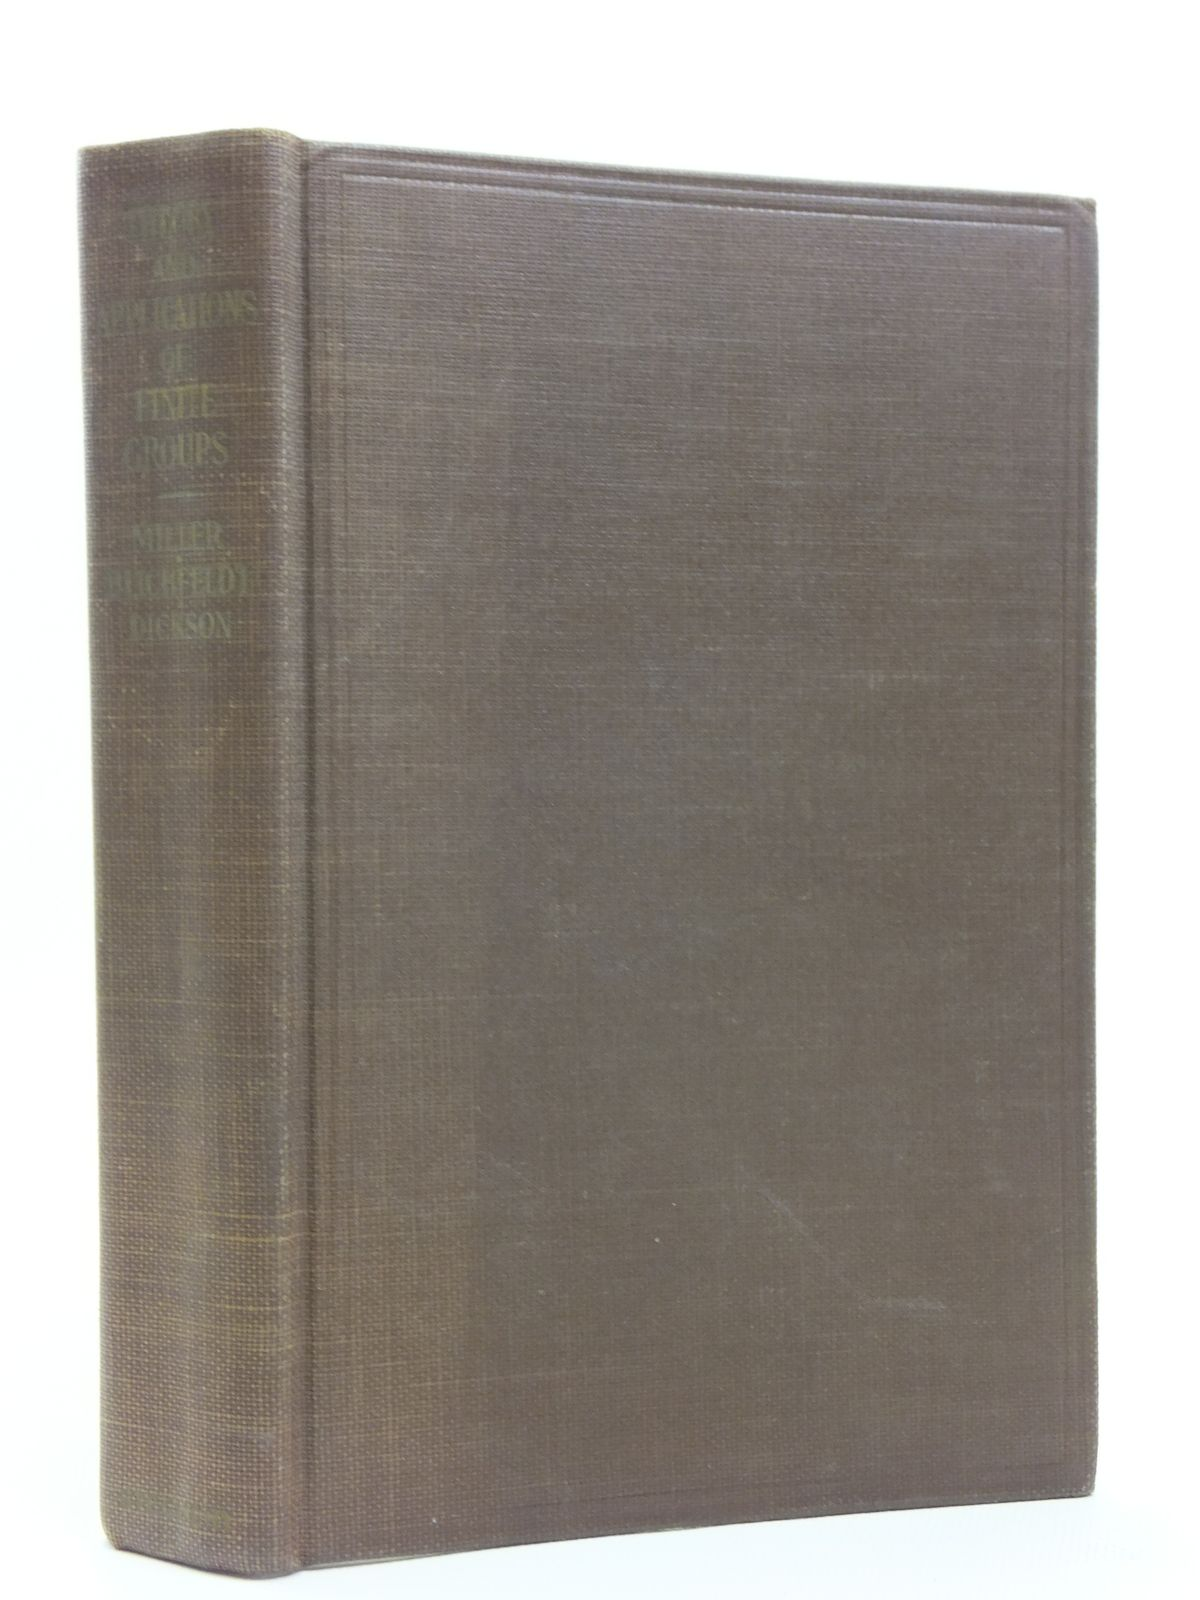 Photo of THEORY AND APPLICATIONS OF FINITE GROUPS written by Miller, G.A. Blichfeldt, H.F. Dickson, L.E. published by G.E. Stechert & Co. (STOCK CODE: 2120726)  for sale by Stella & Rose's Books